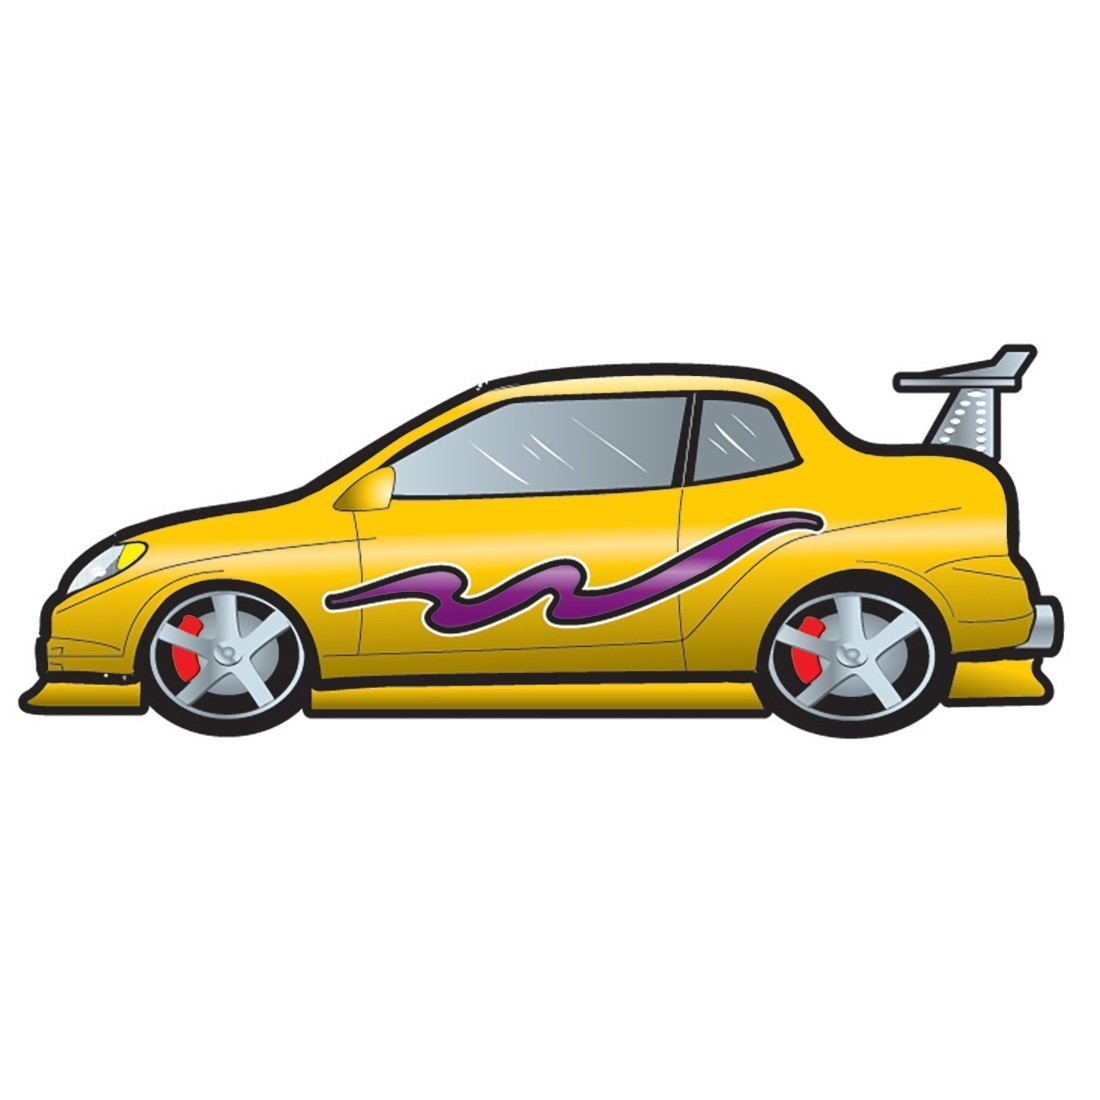 Make stickers for your car - Make Your Own Hot Rod Stickers Image Slider Image 0 Slider Image 1